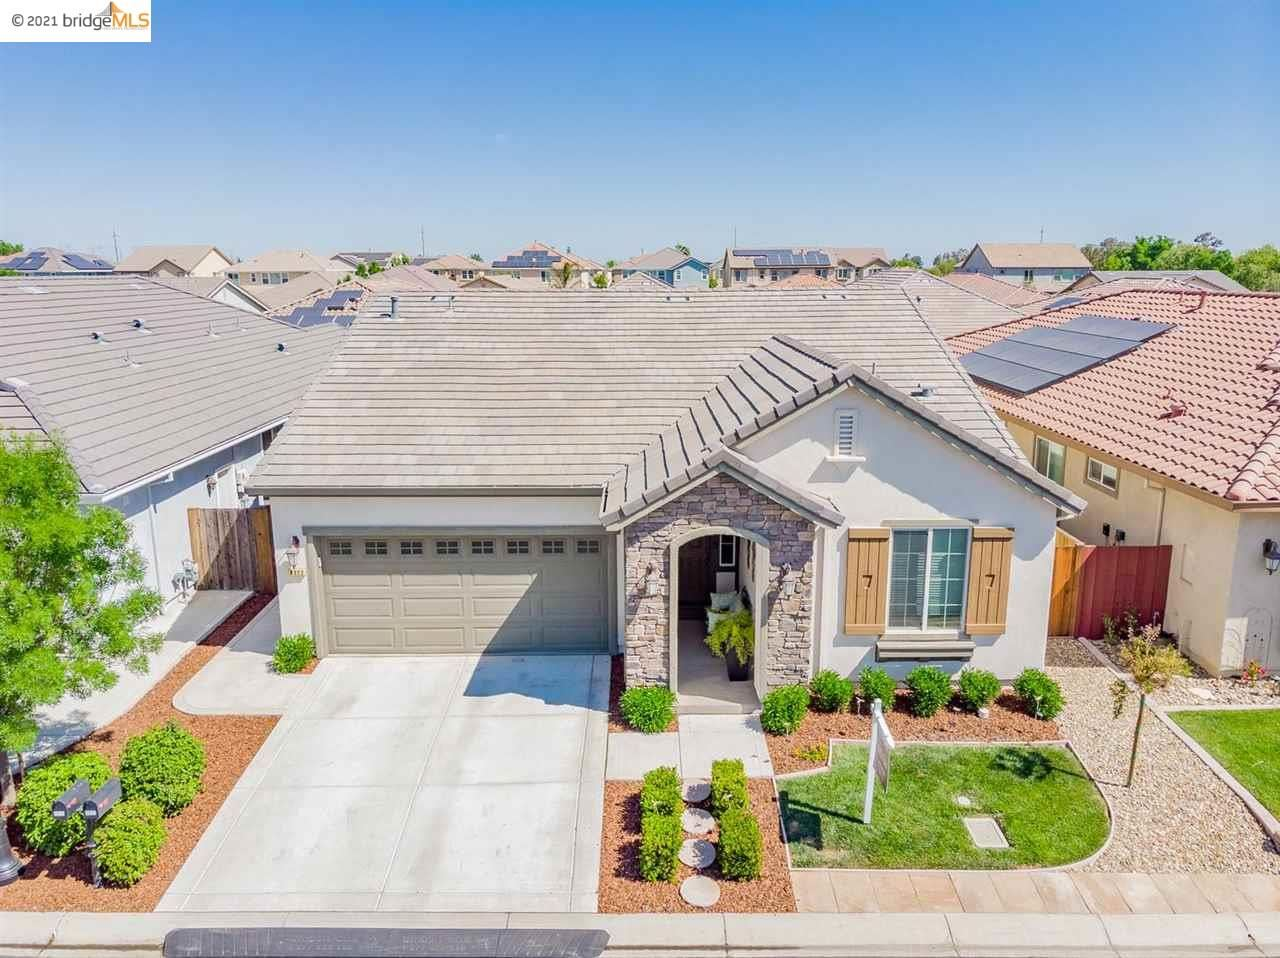 Photo of 8312 Brookhaven, DISCOVERY BAY, CA 94505 (MLS # 40947283)